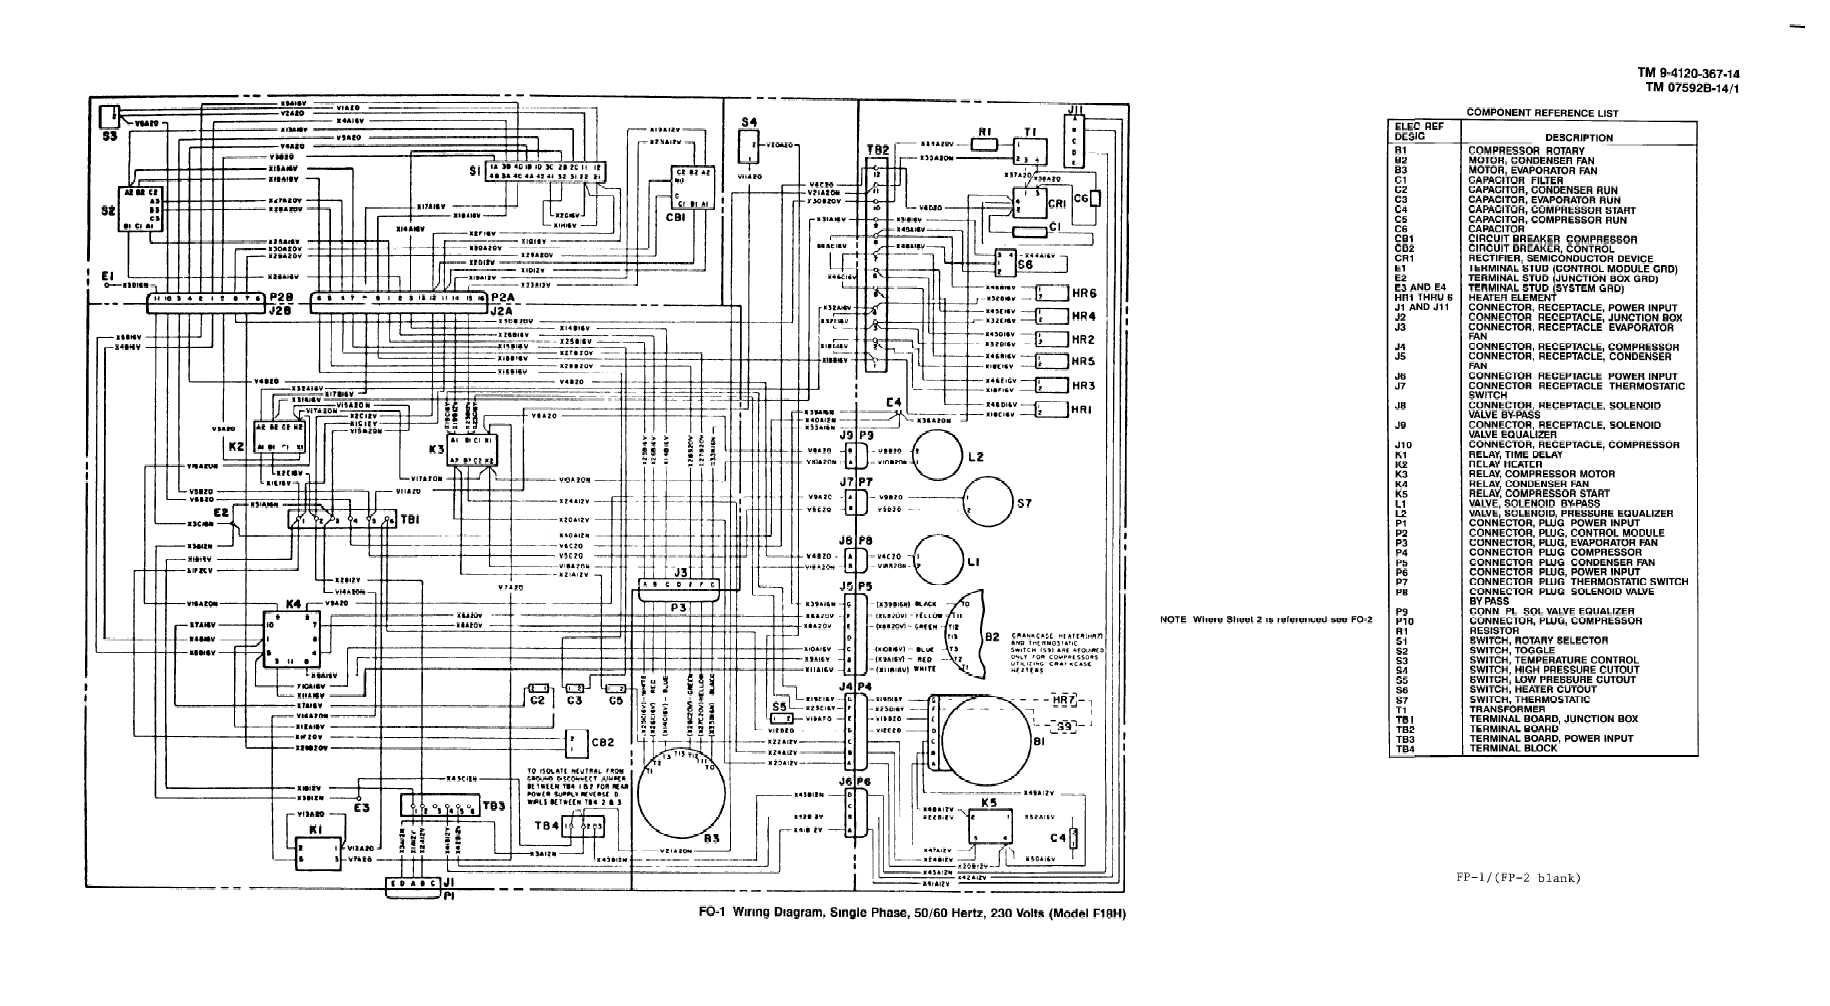 fo 1 wiring diagram single phase 50 60 hertz 230 volts. Black Bedroom Furniture Sets. Home Design Ideas